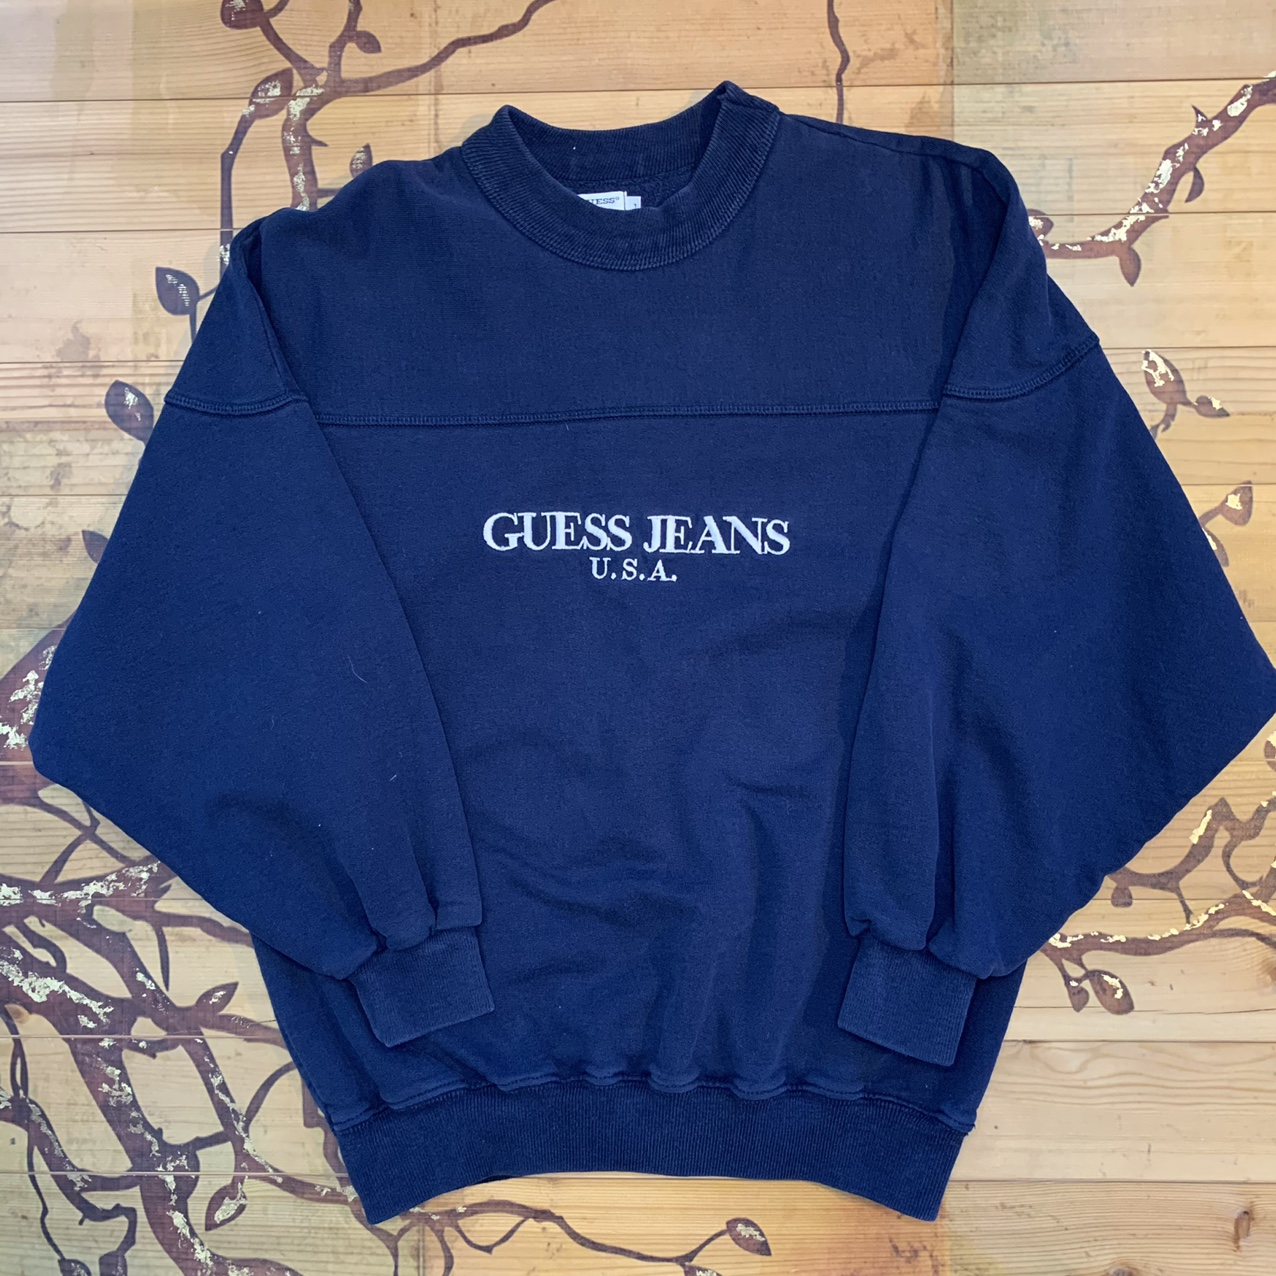 Product Image 1 - Basic Navy Guess Sweatshirt this is